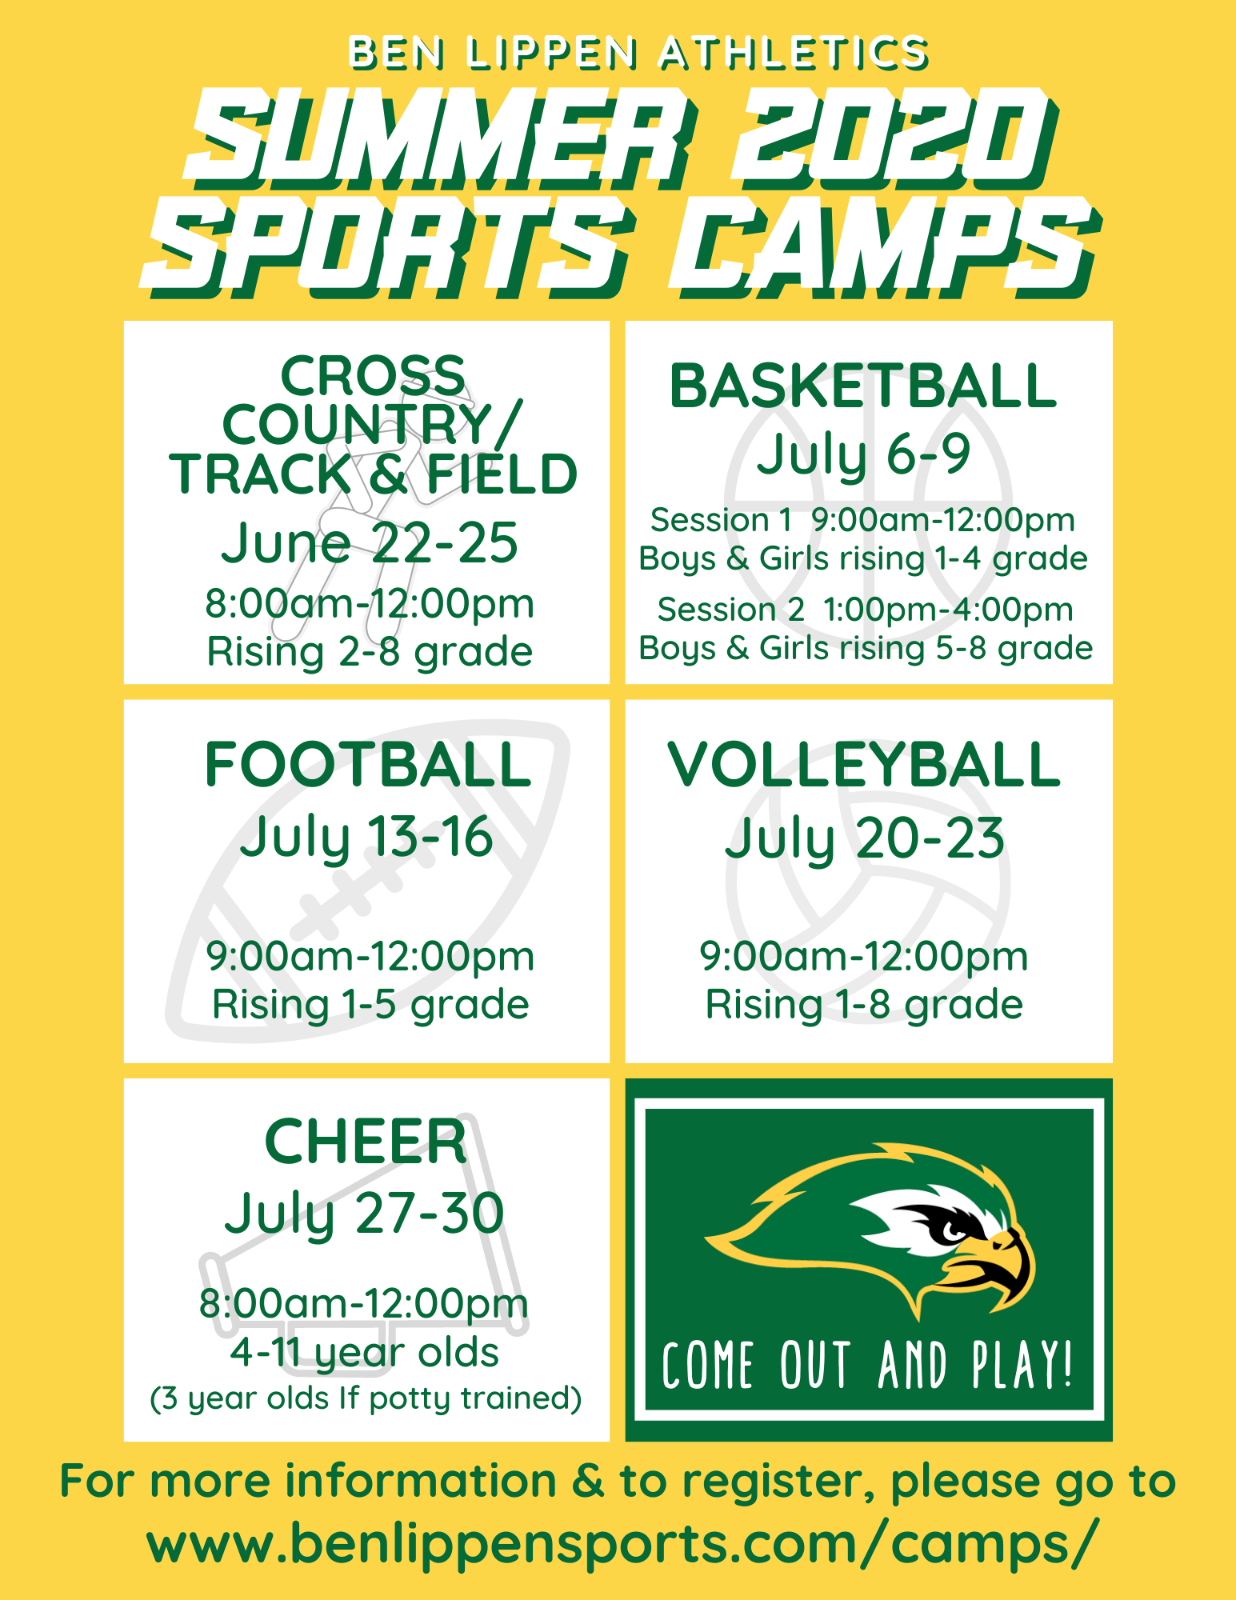 MAKE YOUR SUMMER PLANS NOW!